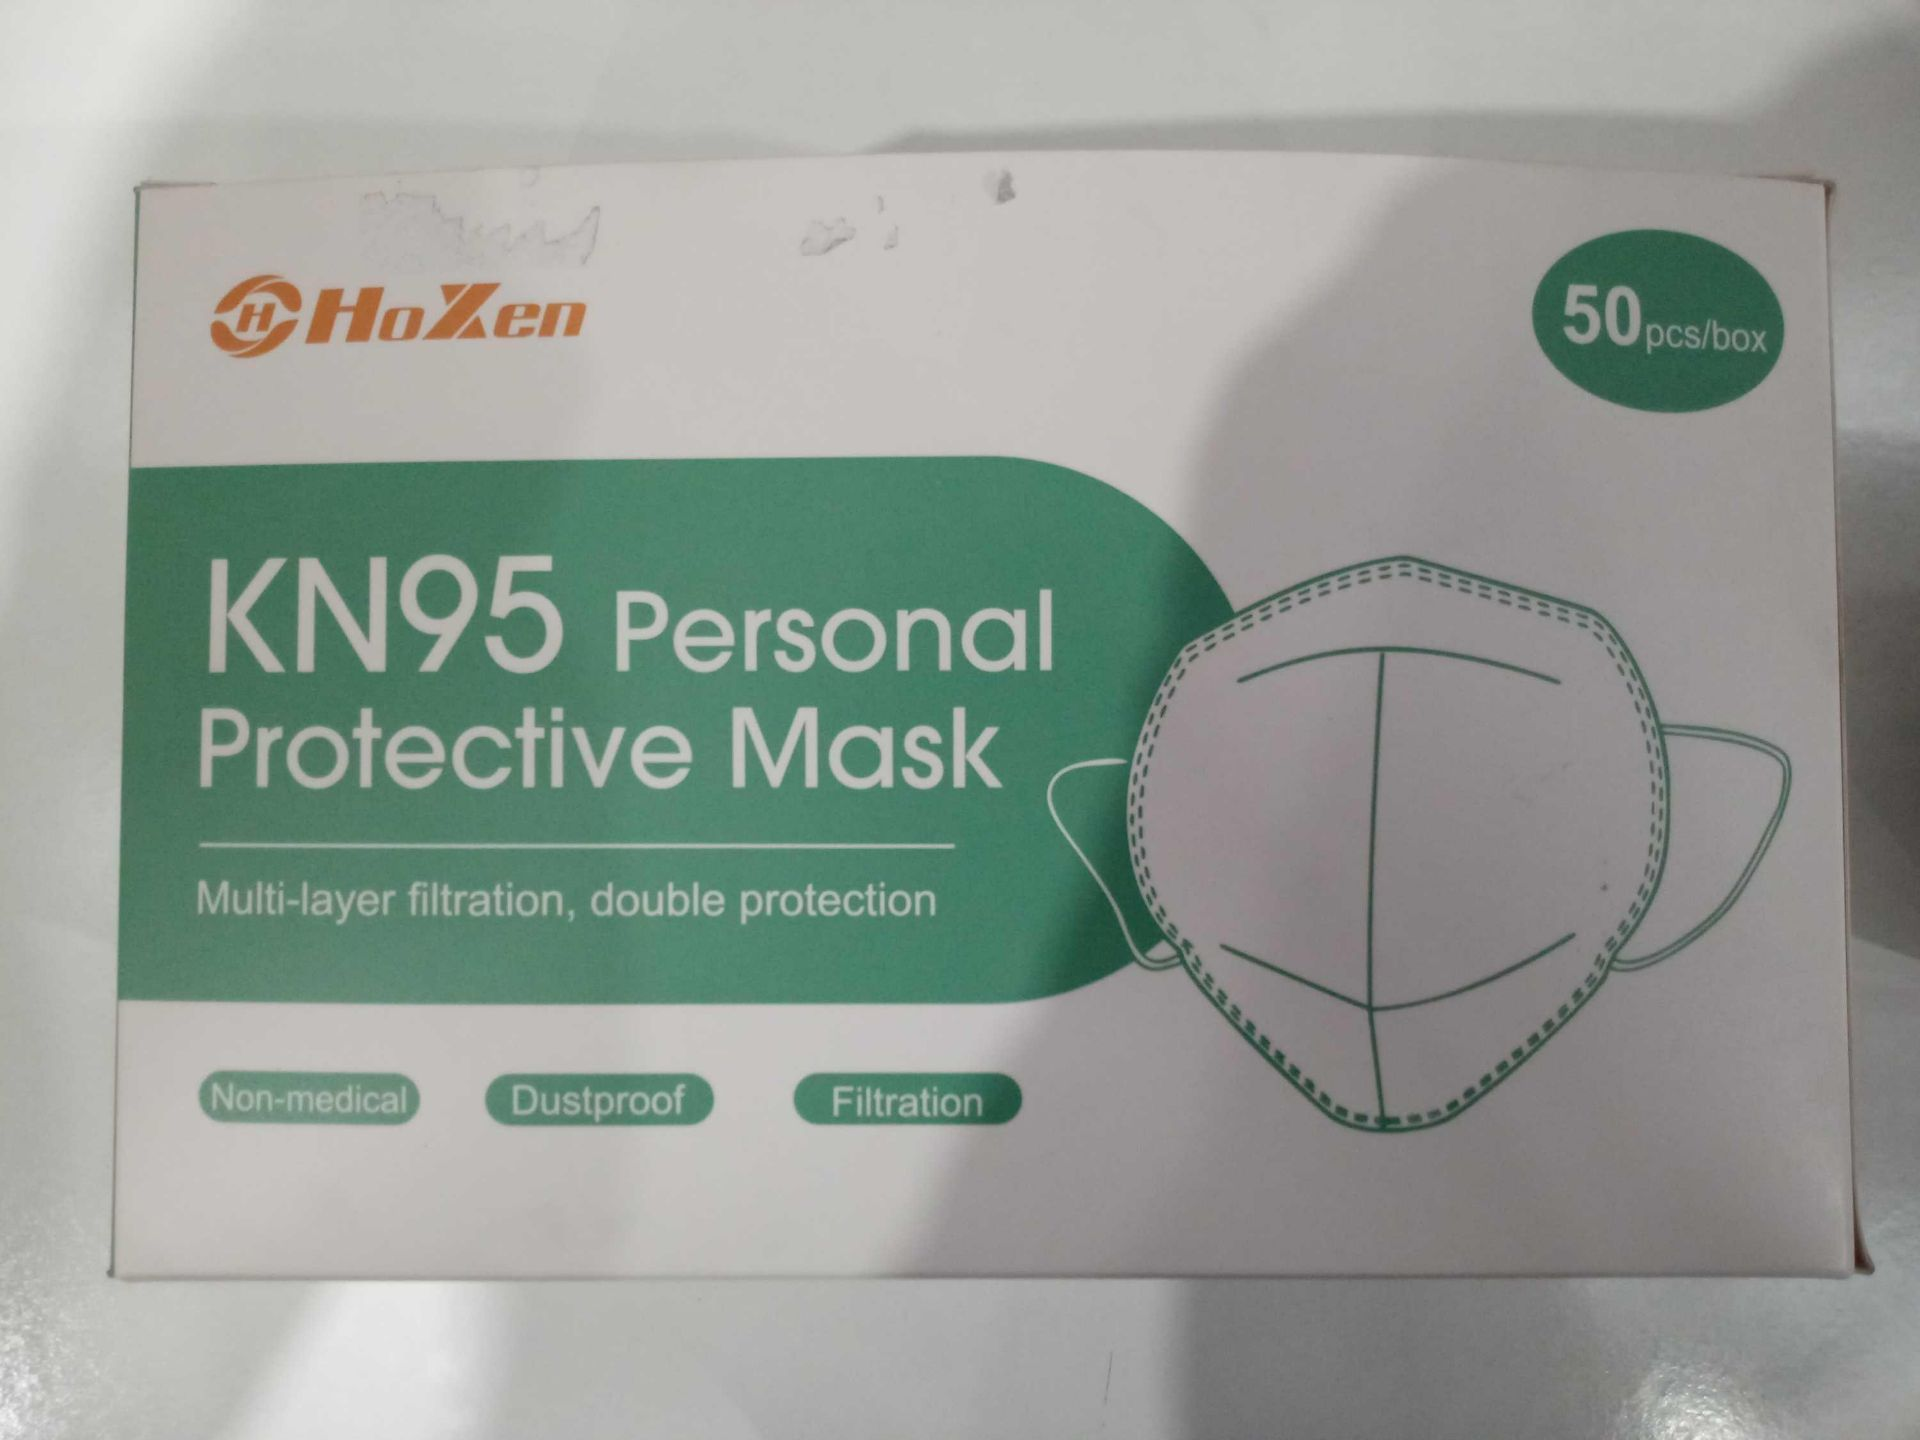 Lot 371 - Box of KN95 personal protective masks